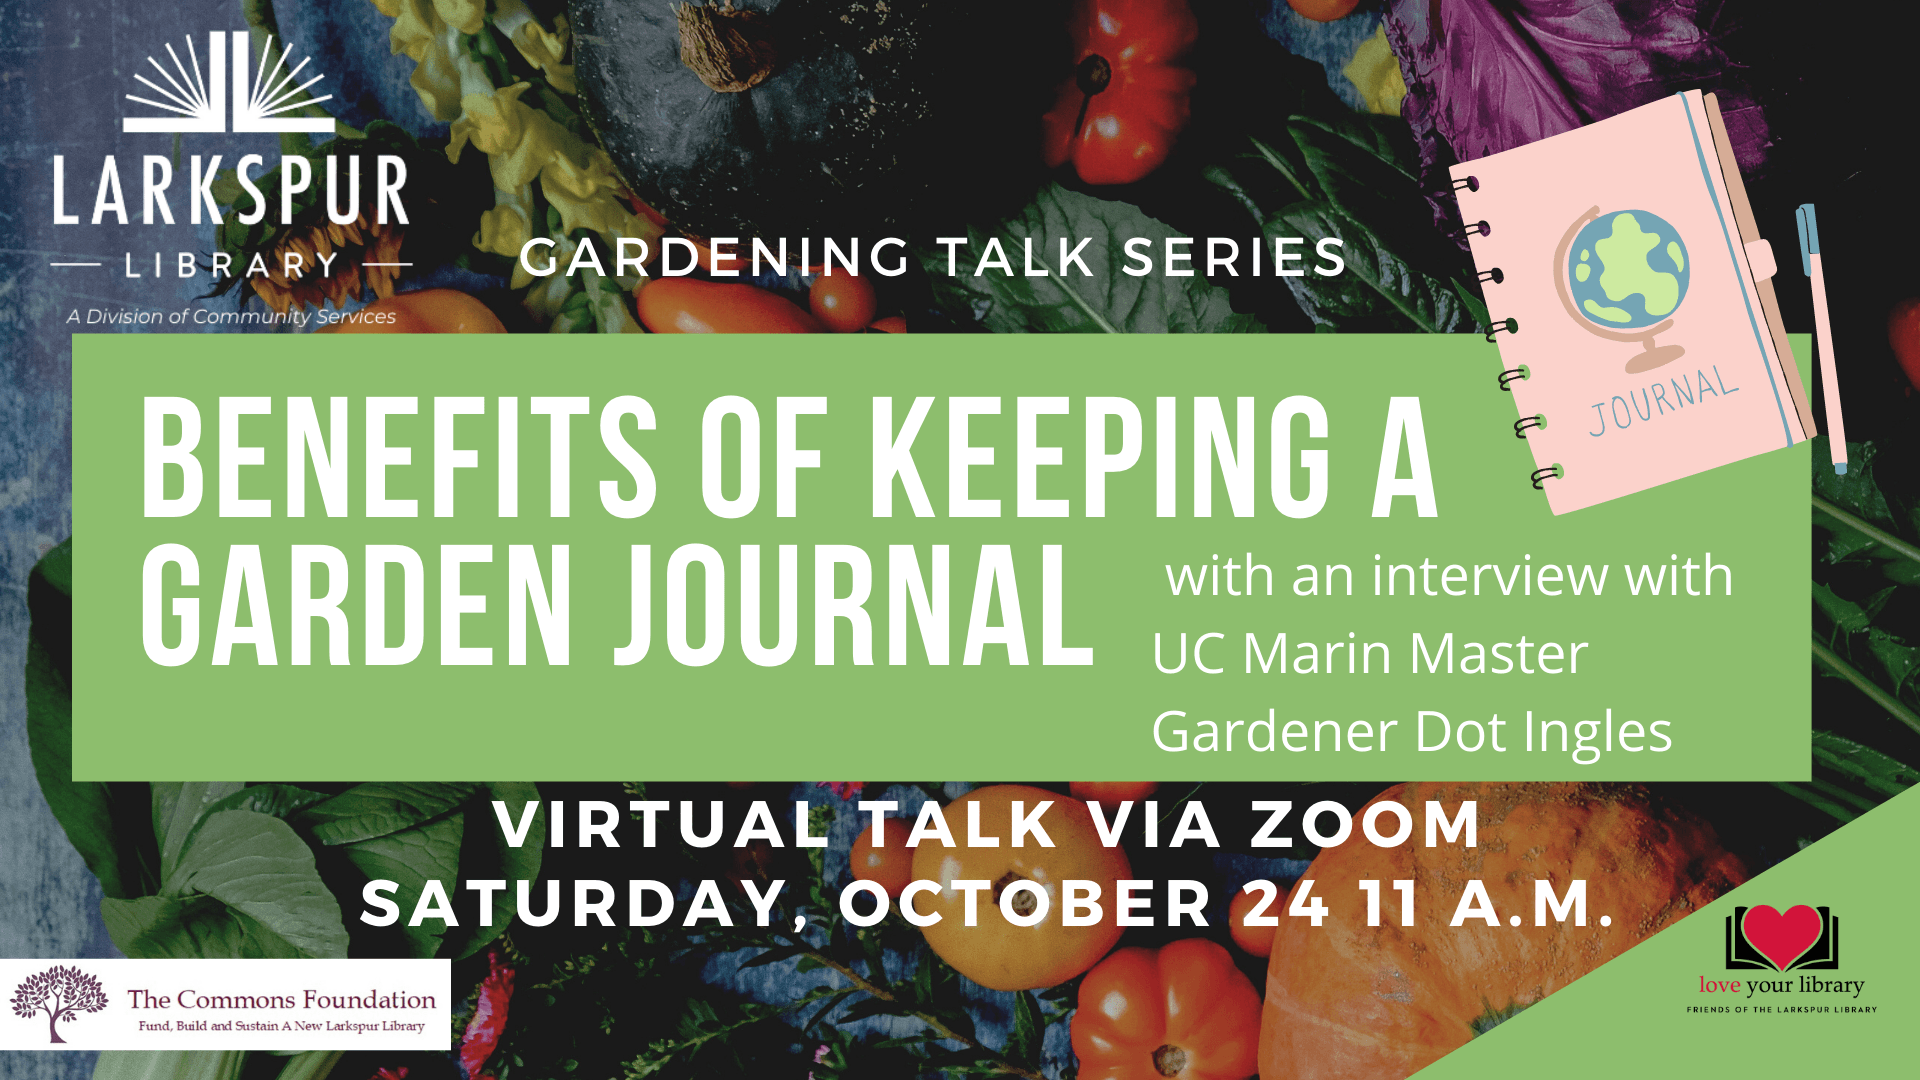 Benefits of Keeping a Garden Journal an interview with Dot Ingles Sat Oct 24 at 11 AM